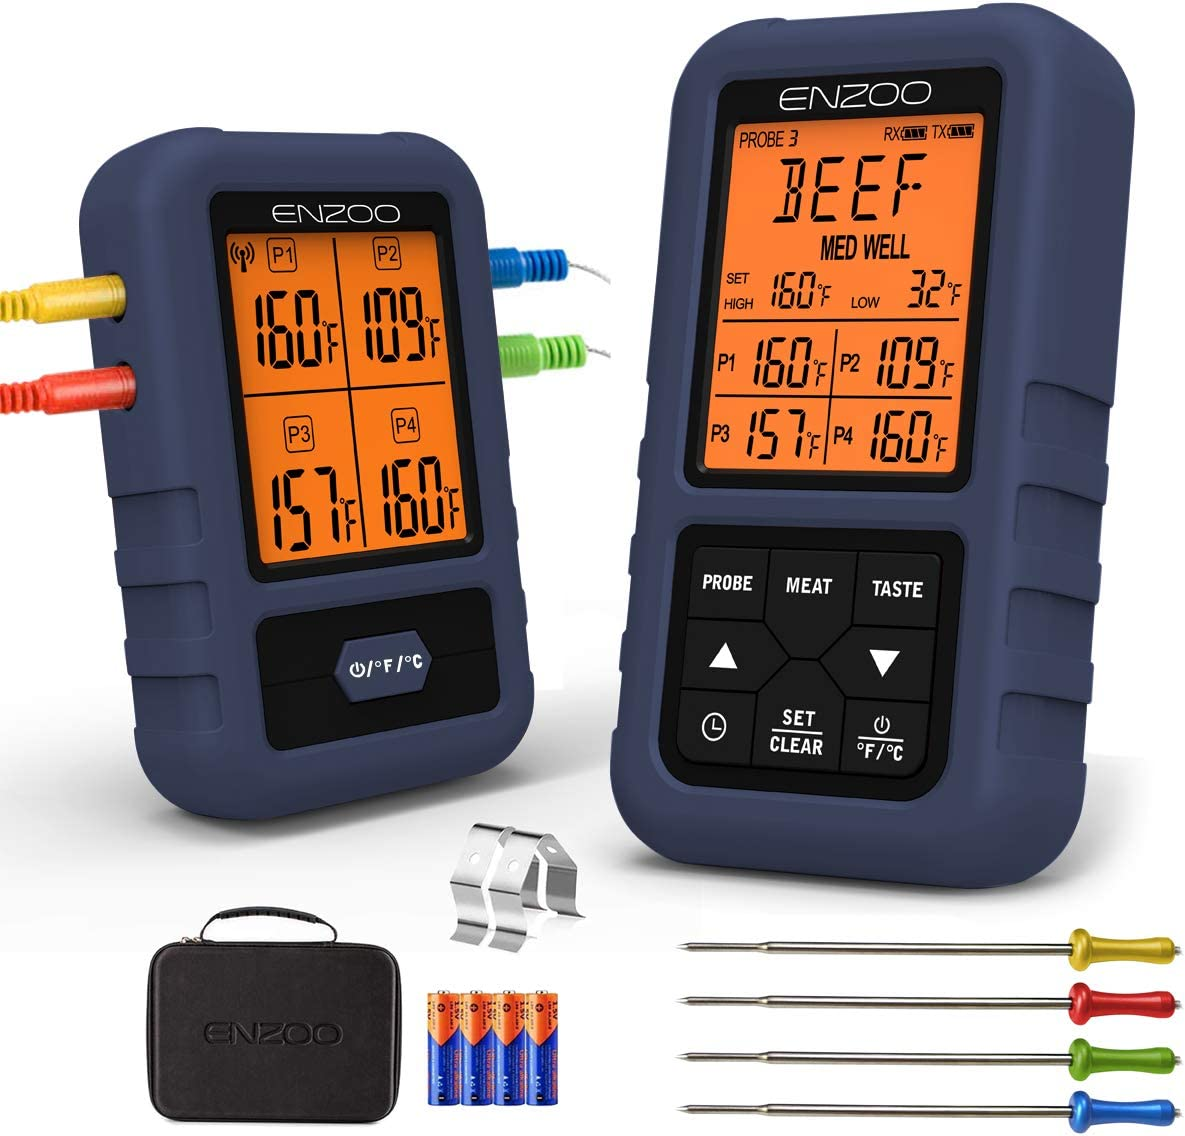 Best Wireless Meat Thermometer 2021 Amazon.com: Meat Thermometer, ENZOO Wireless Meat Thermometer for